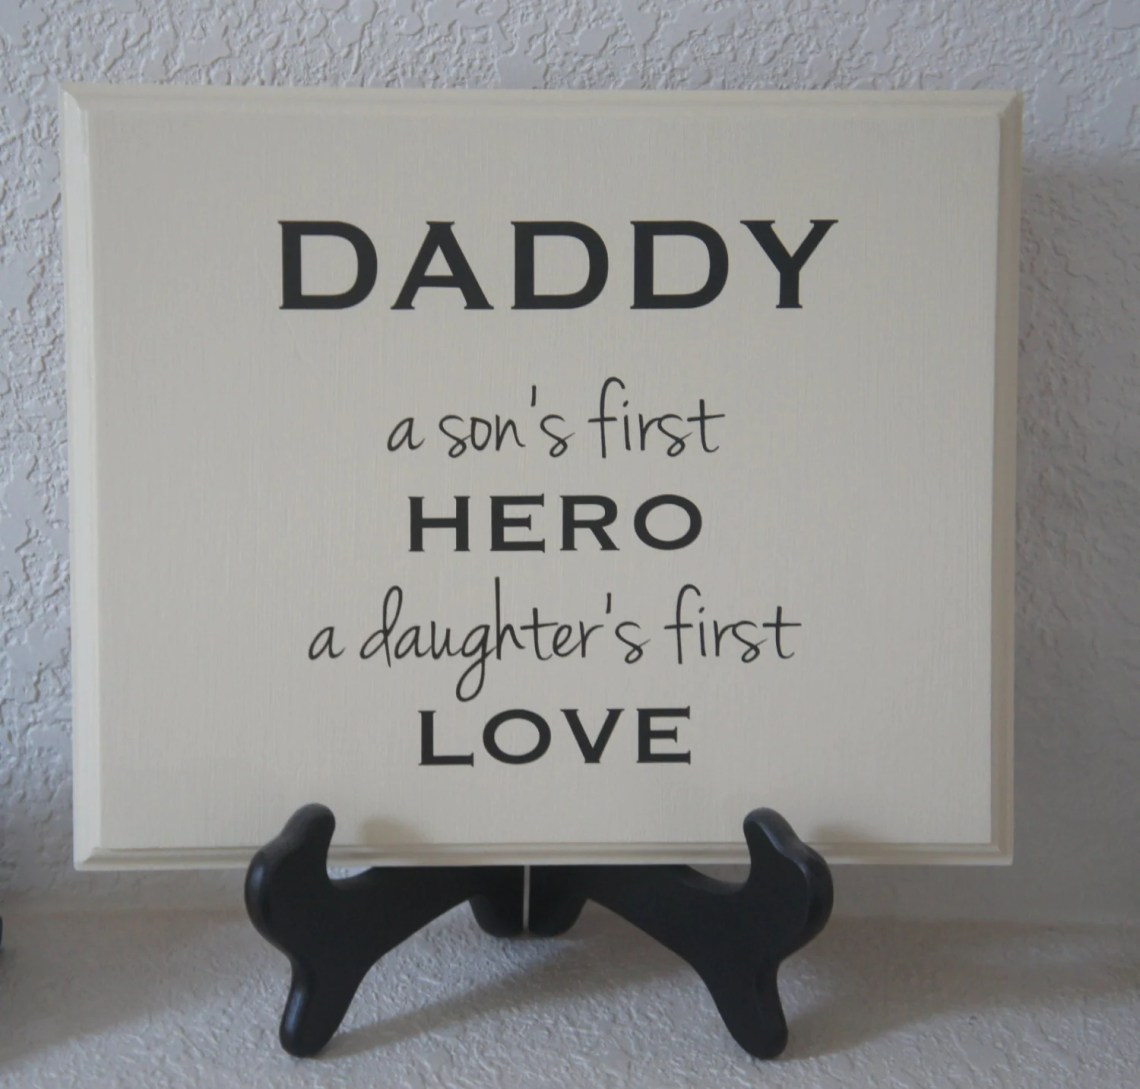 Download Daddy a son's first hero a daughters first love plaque